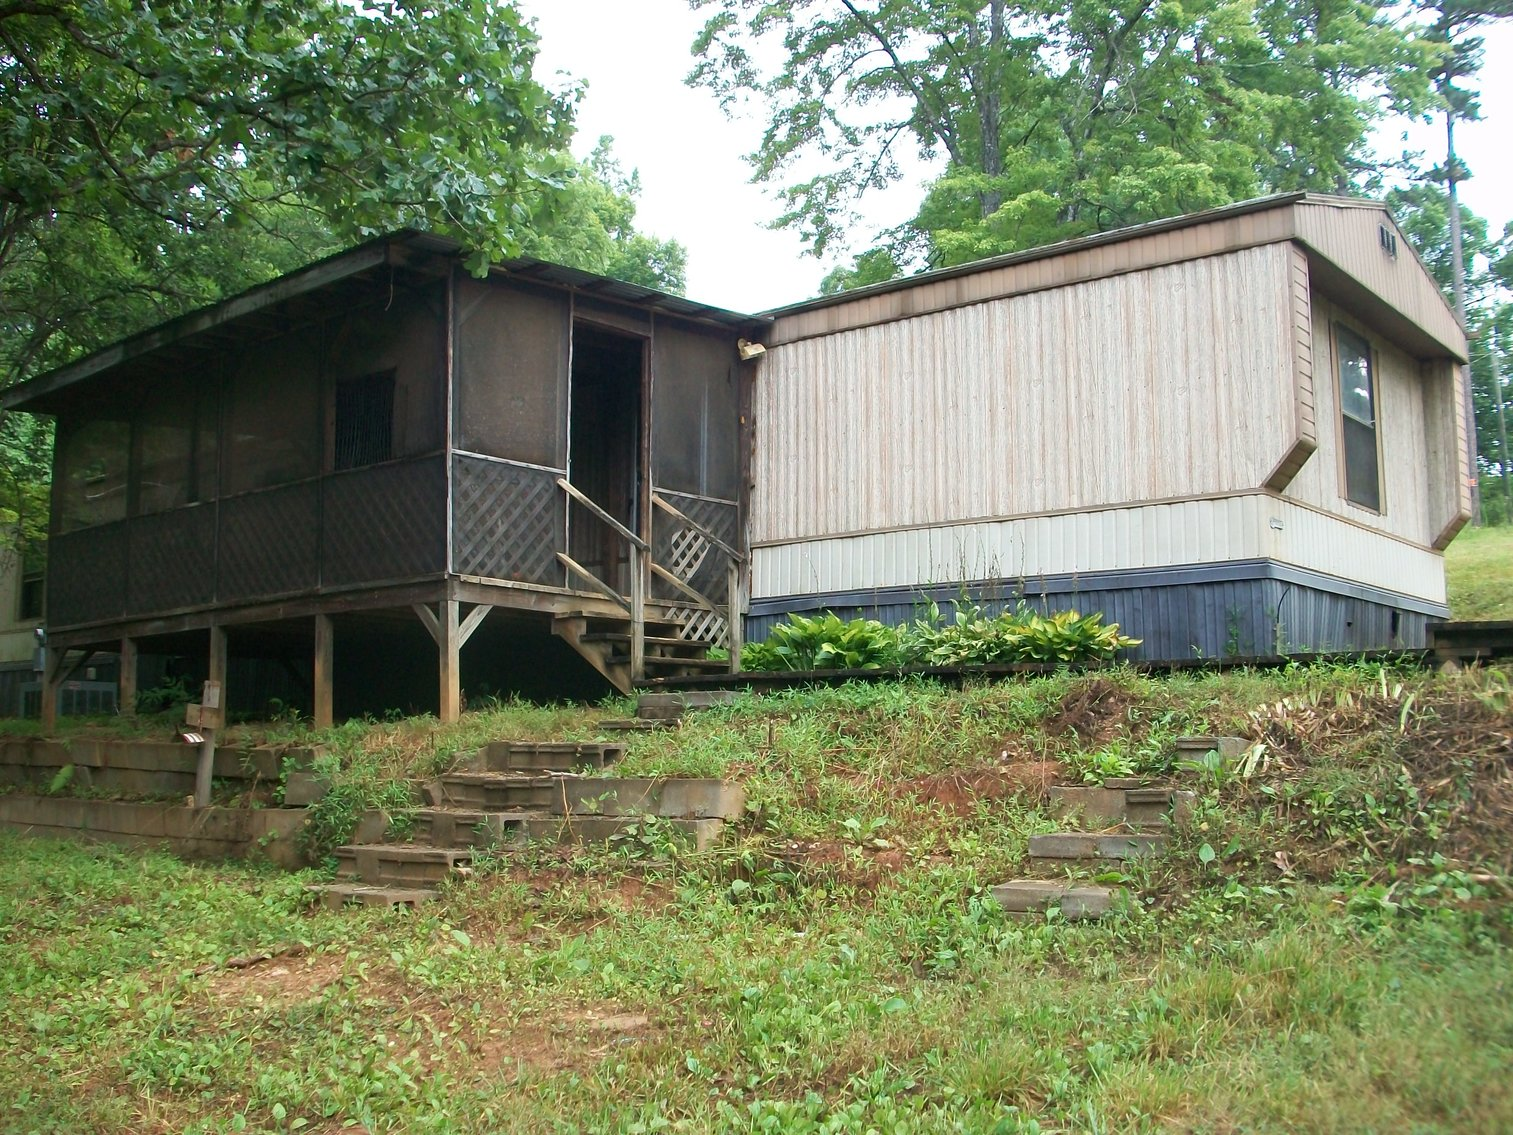 Image for REAL ESTATE AUCTION: 1.47± AC with 2BR, 2BA home (Thaxton, VA)